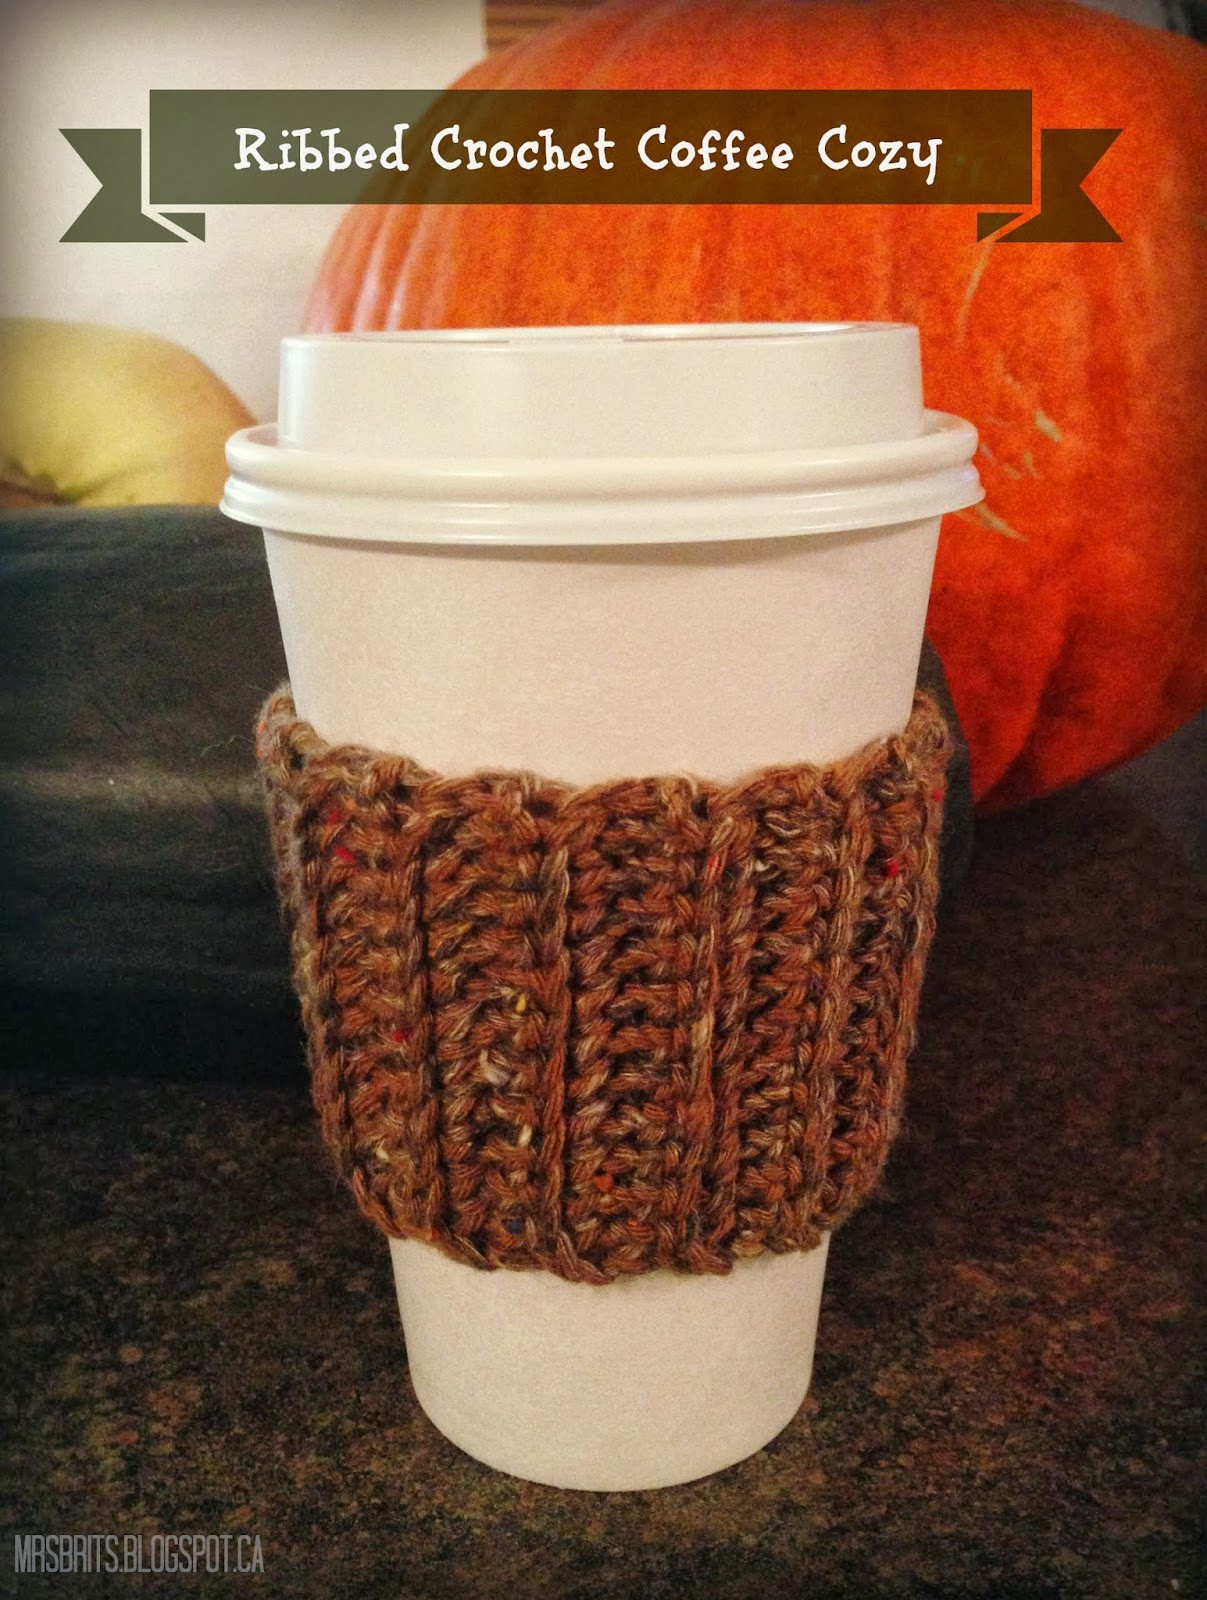 Crochet Coffee Cup Cozy Unique Mrsbrits Ribbed Coffee Cozy Crochet Pattern Of Crochet Coffee Cup Cozy Inspirational Crochet Coffee Cup Cozy Pattern Pdf Download Coffee Cup Cozy